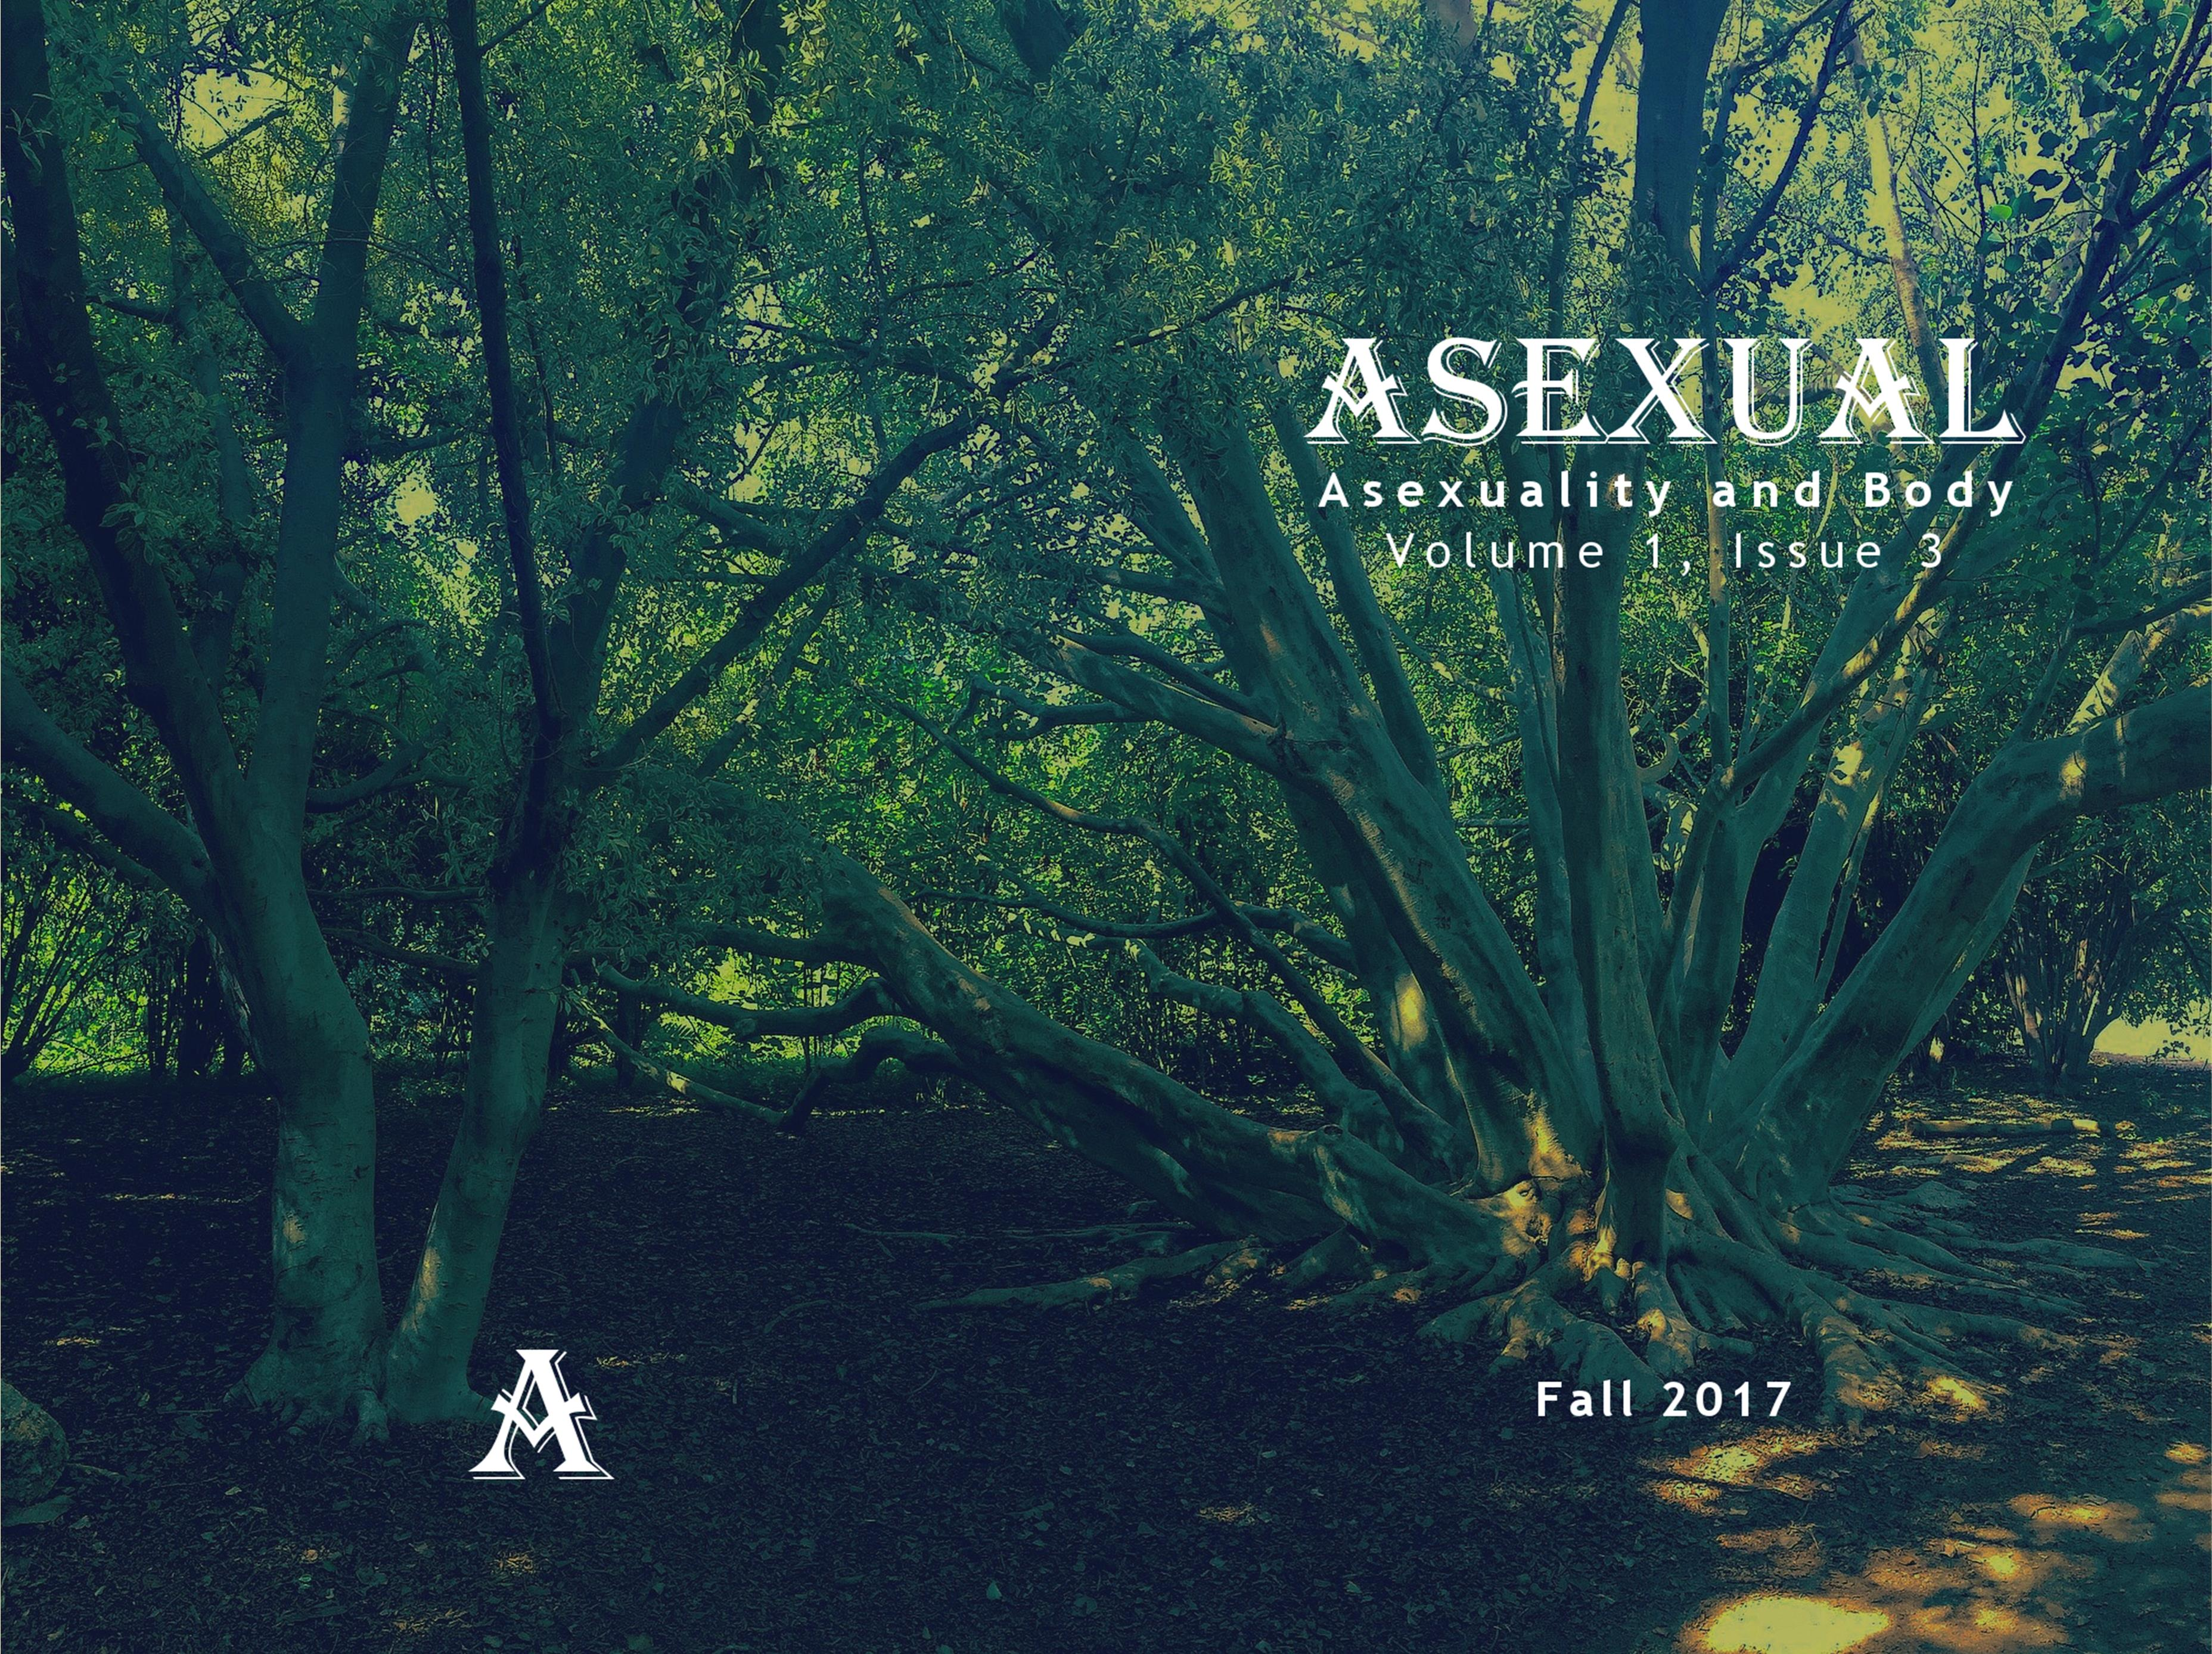 The Asexual: Vol. 1, Issue 3 cover image